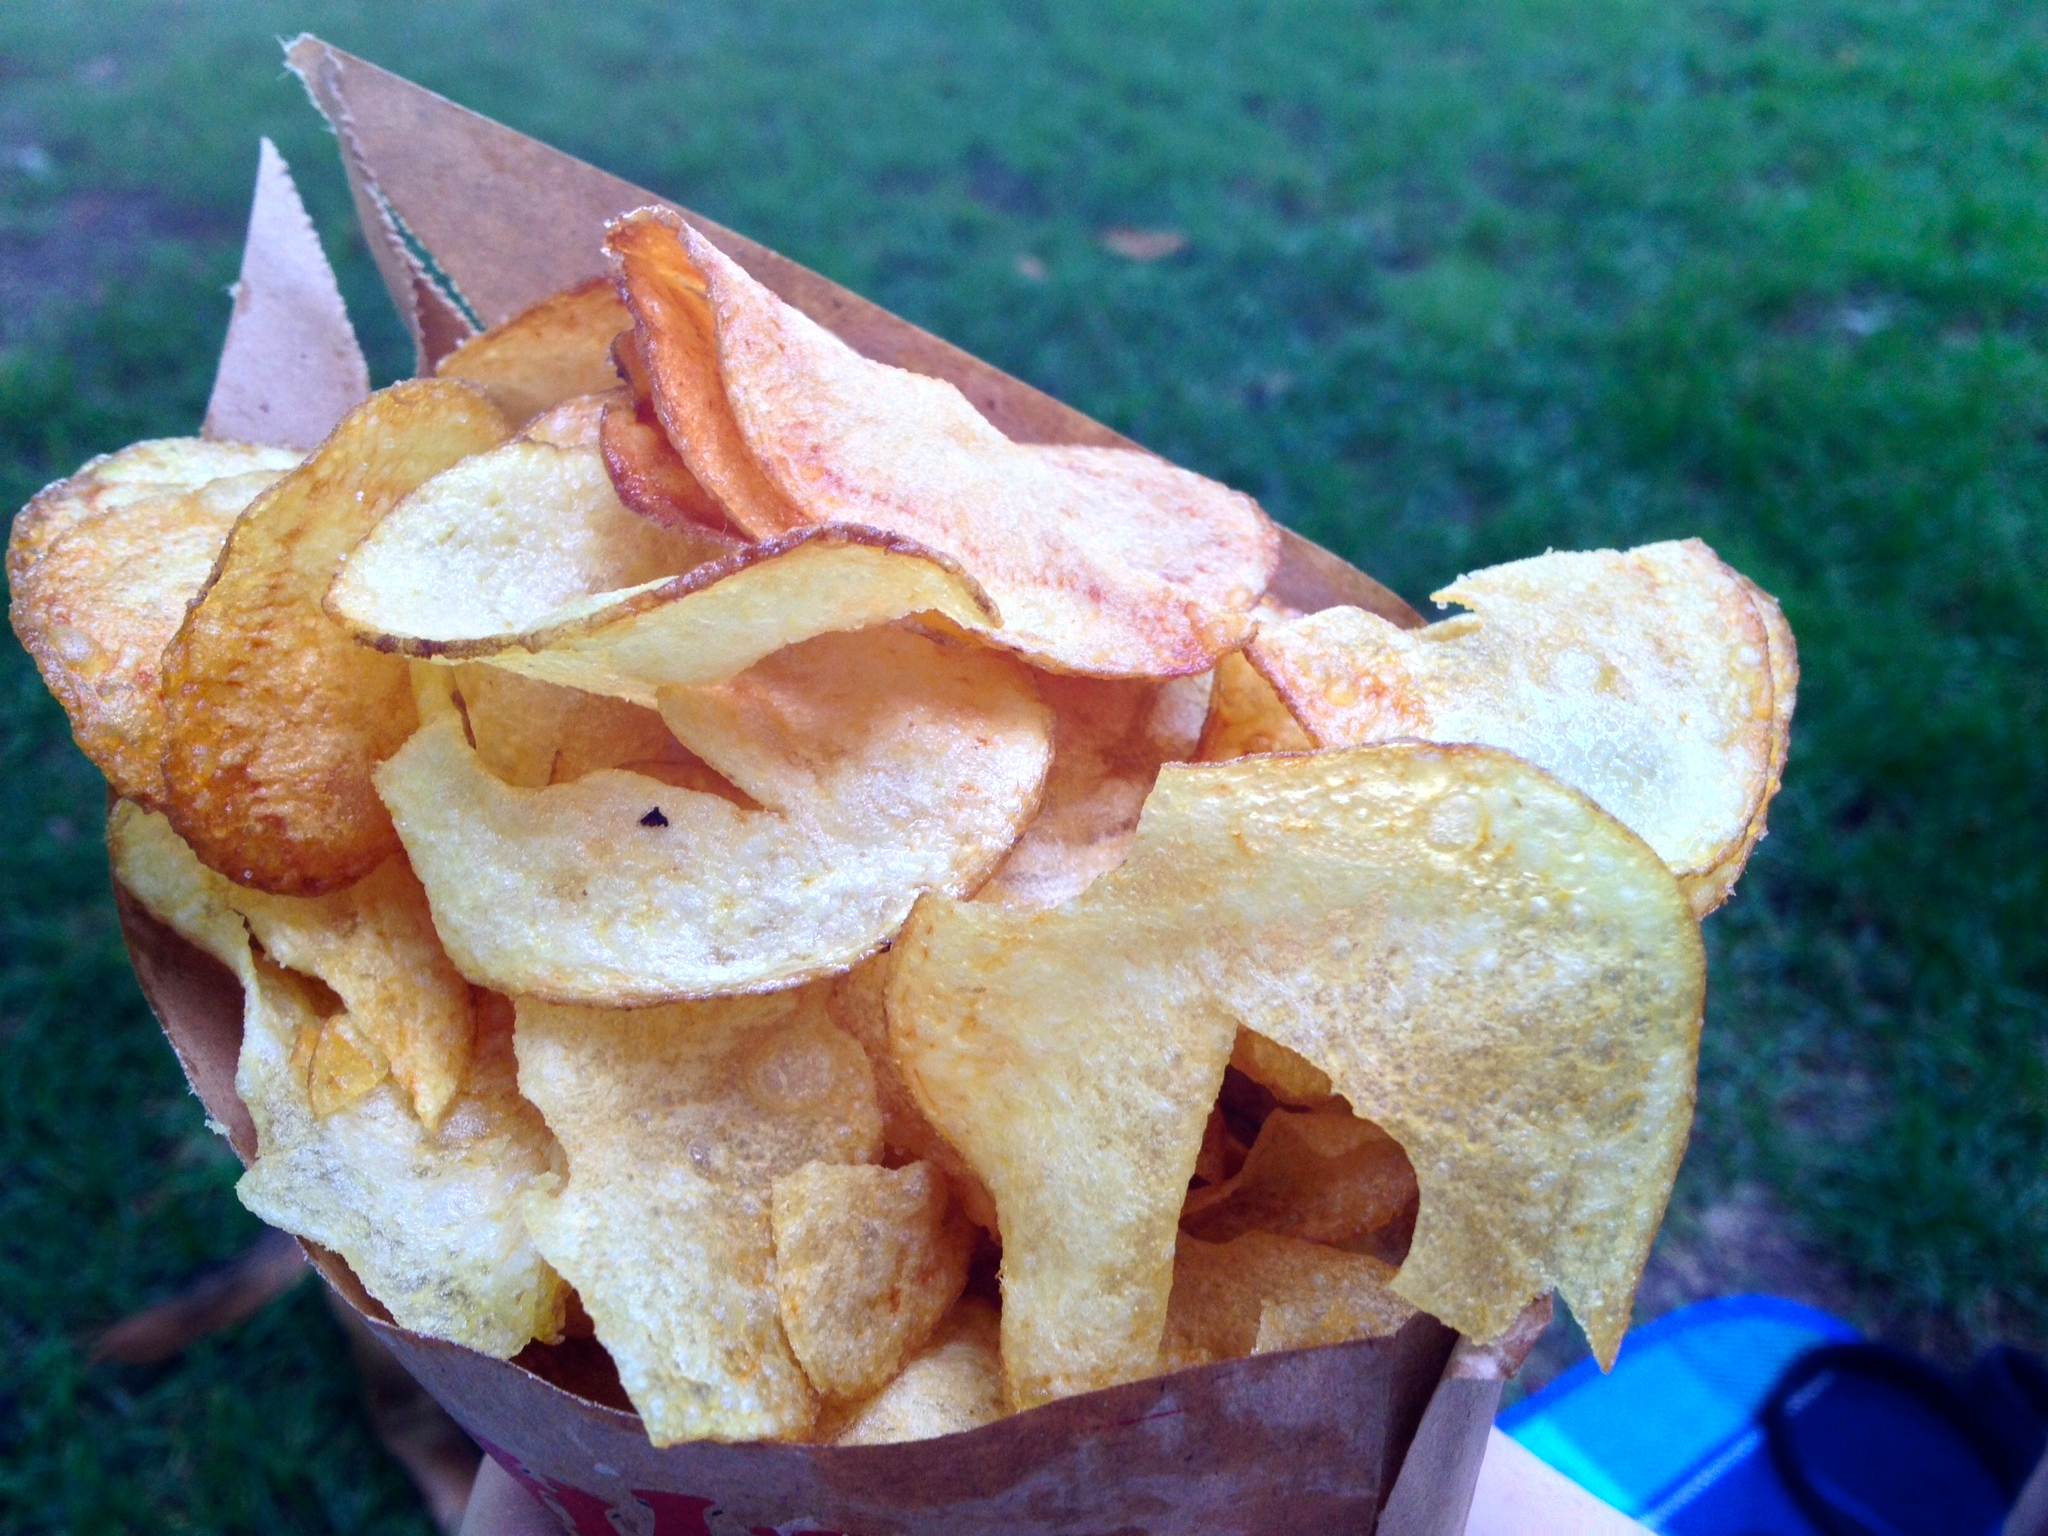 Fresh fried potato chips